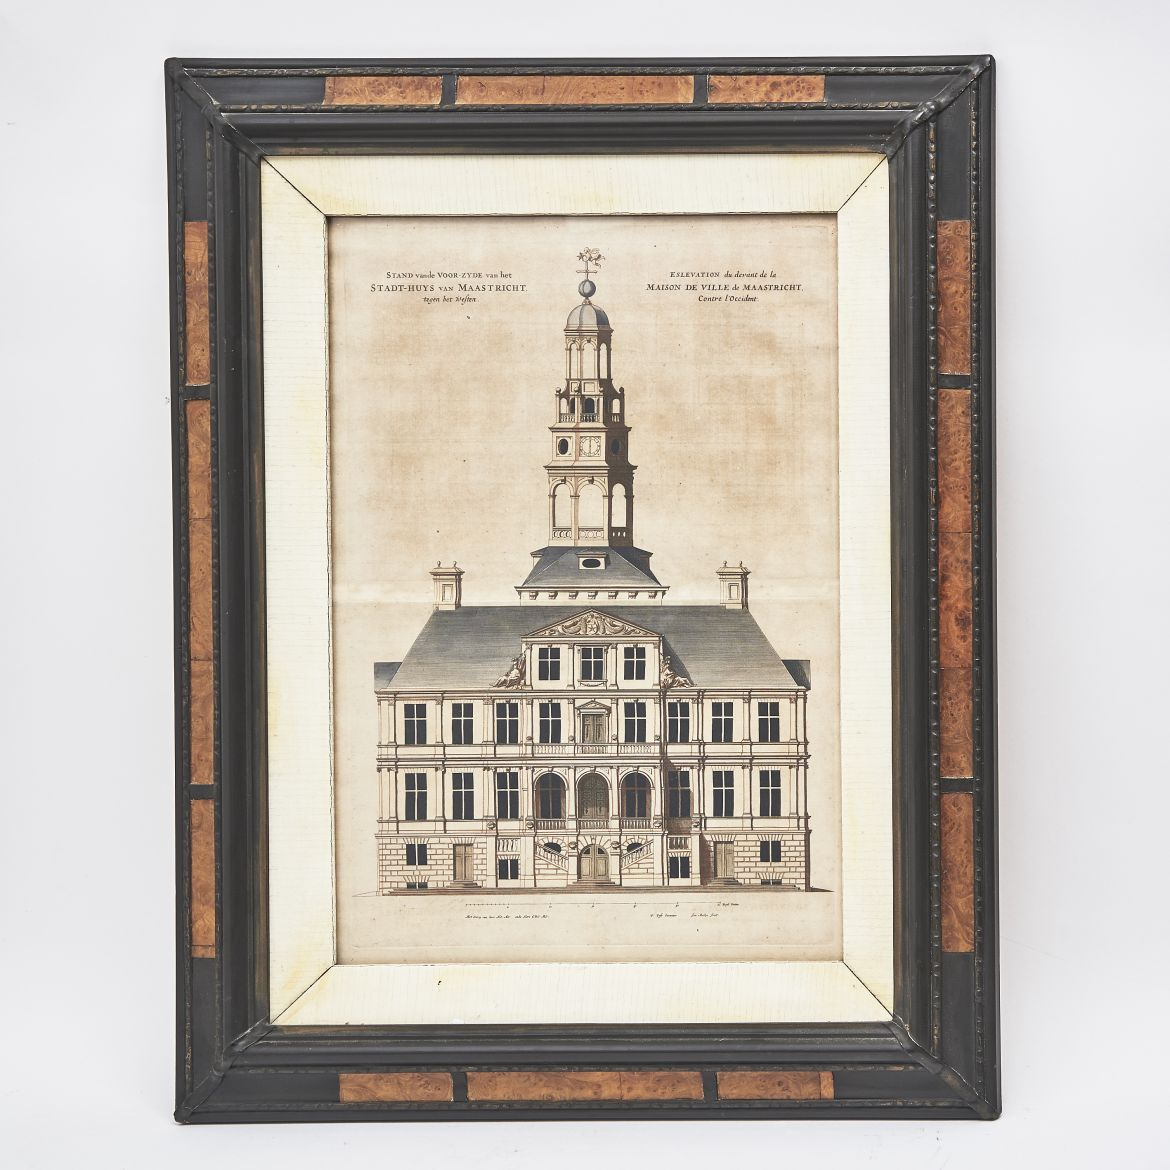 Hand-Coloured Architectural Etching